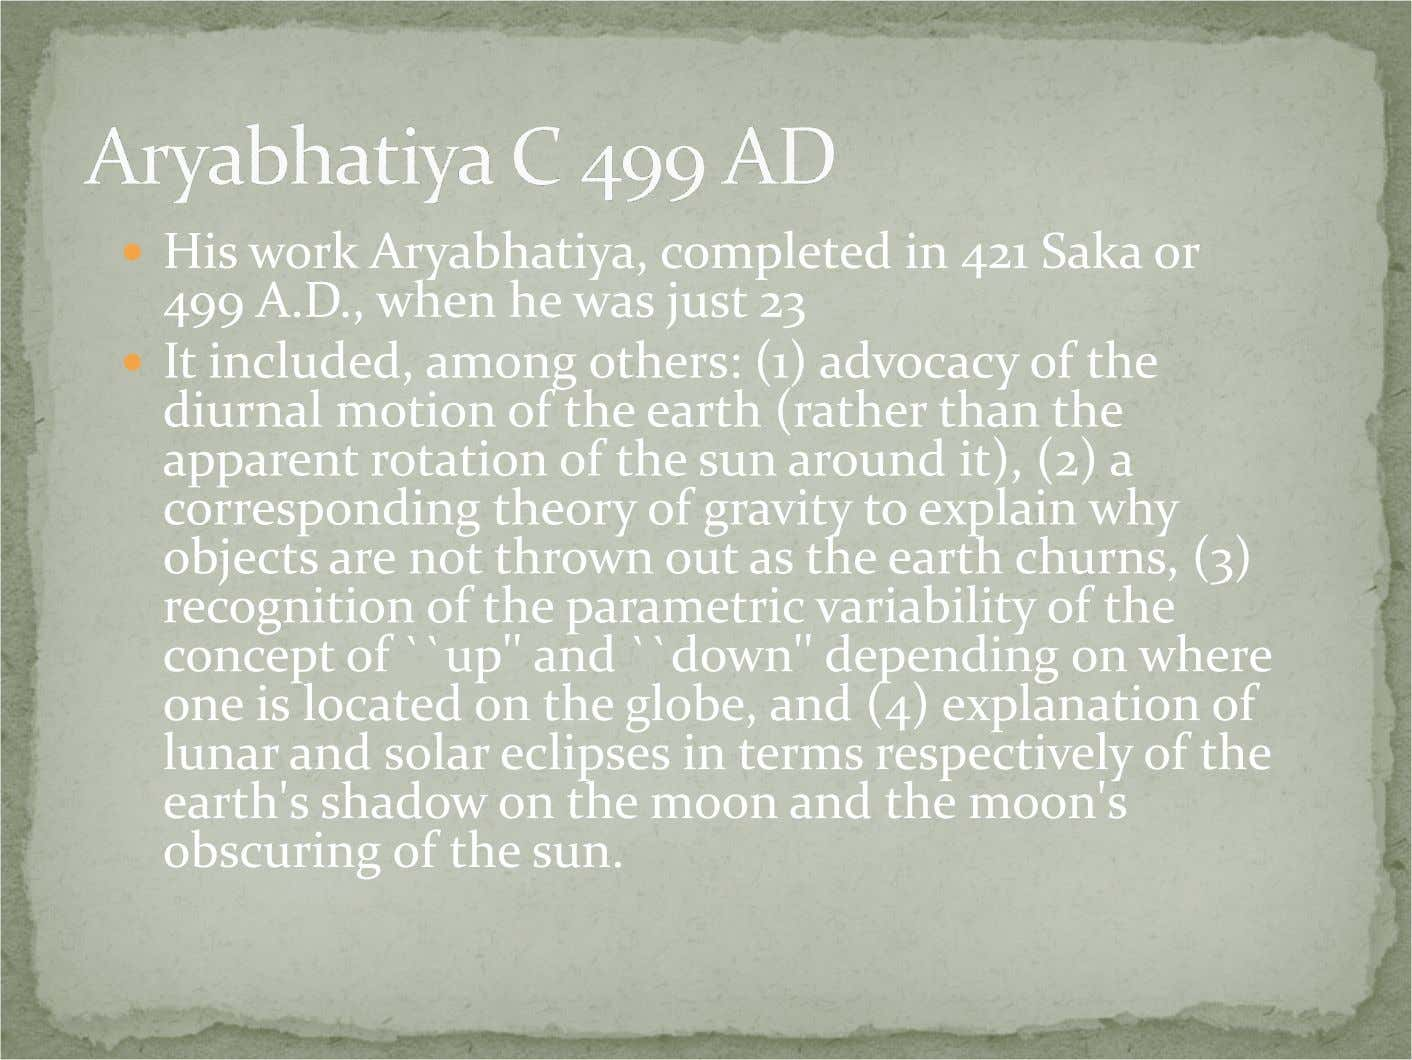 His work Aryabhatiya, completed in 421 Saka or 499 A.D., when he was just 23